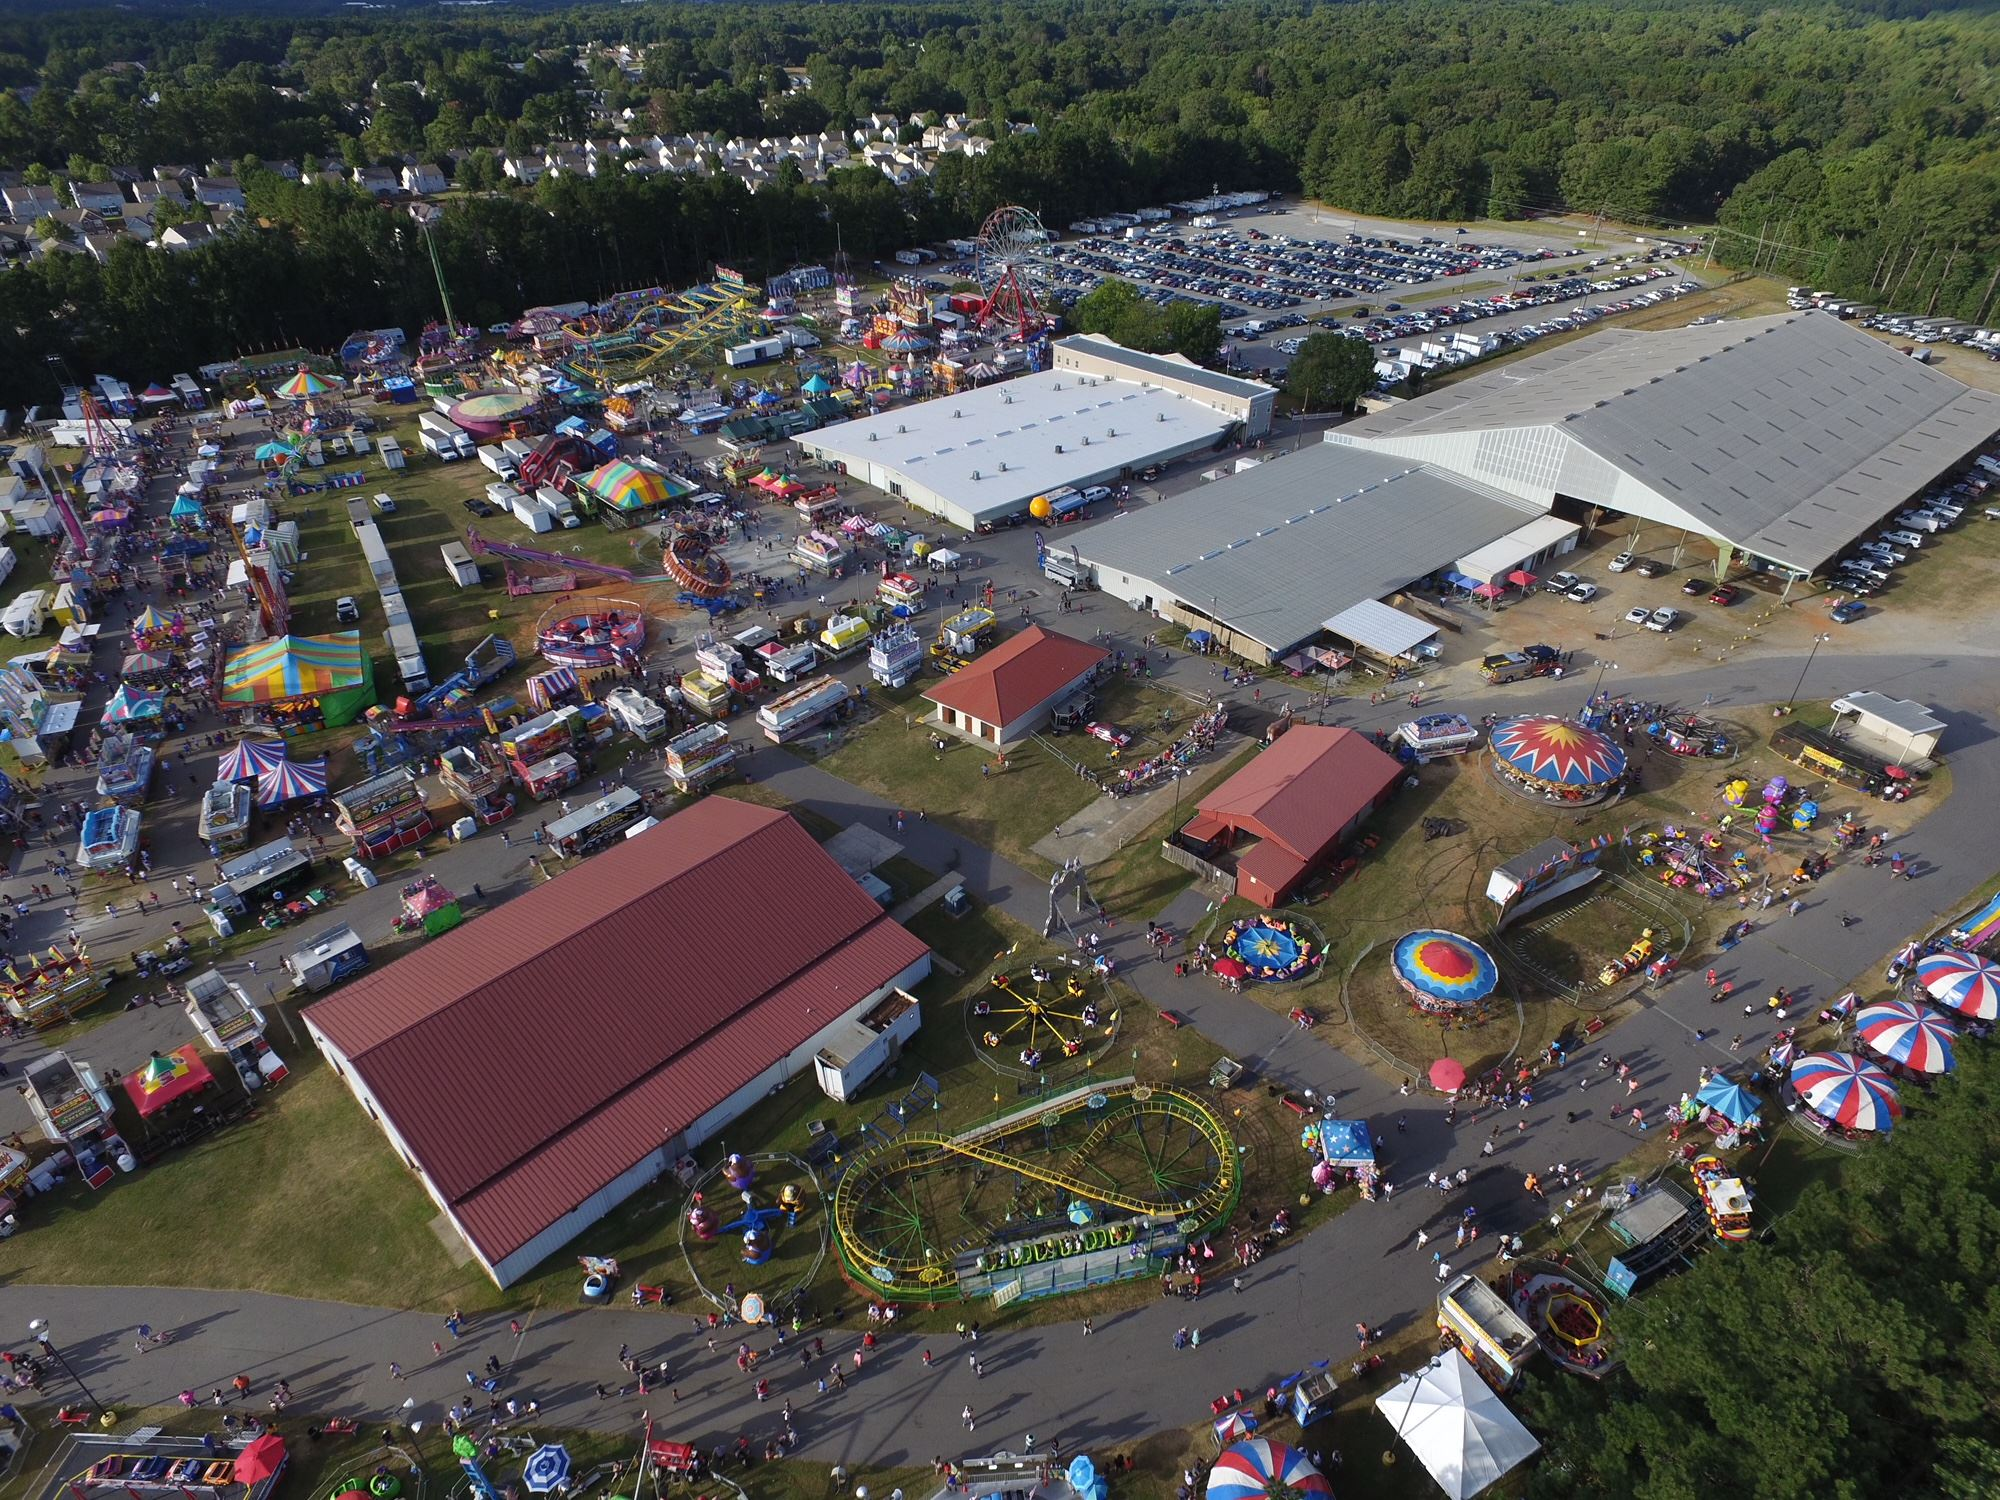 Drone shot of the fair from 500 feet up